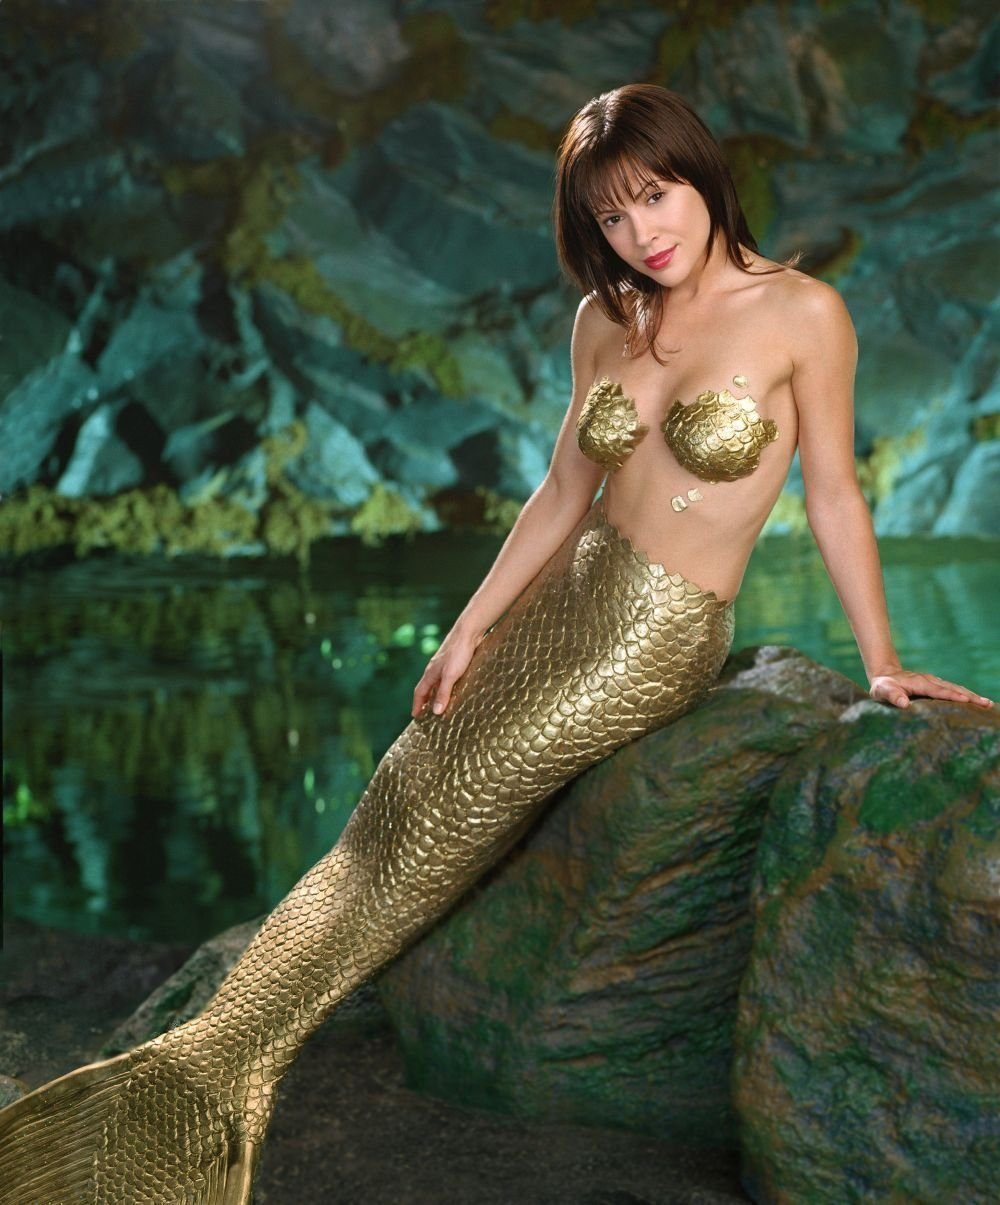 Hot Mermaids Wallpapers